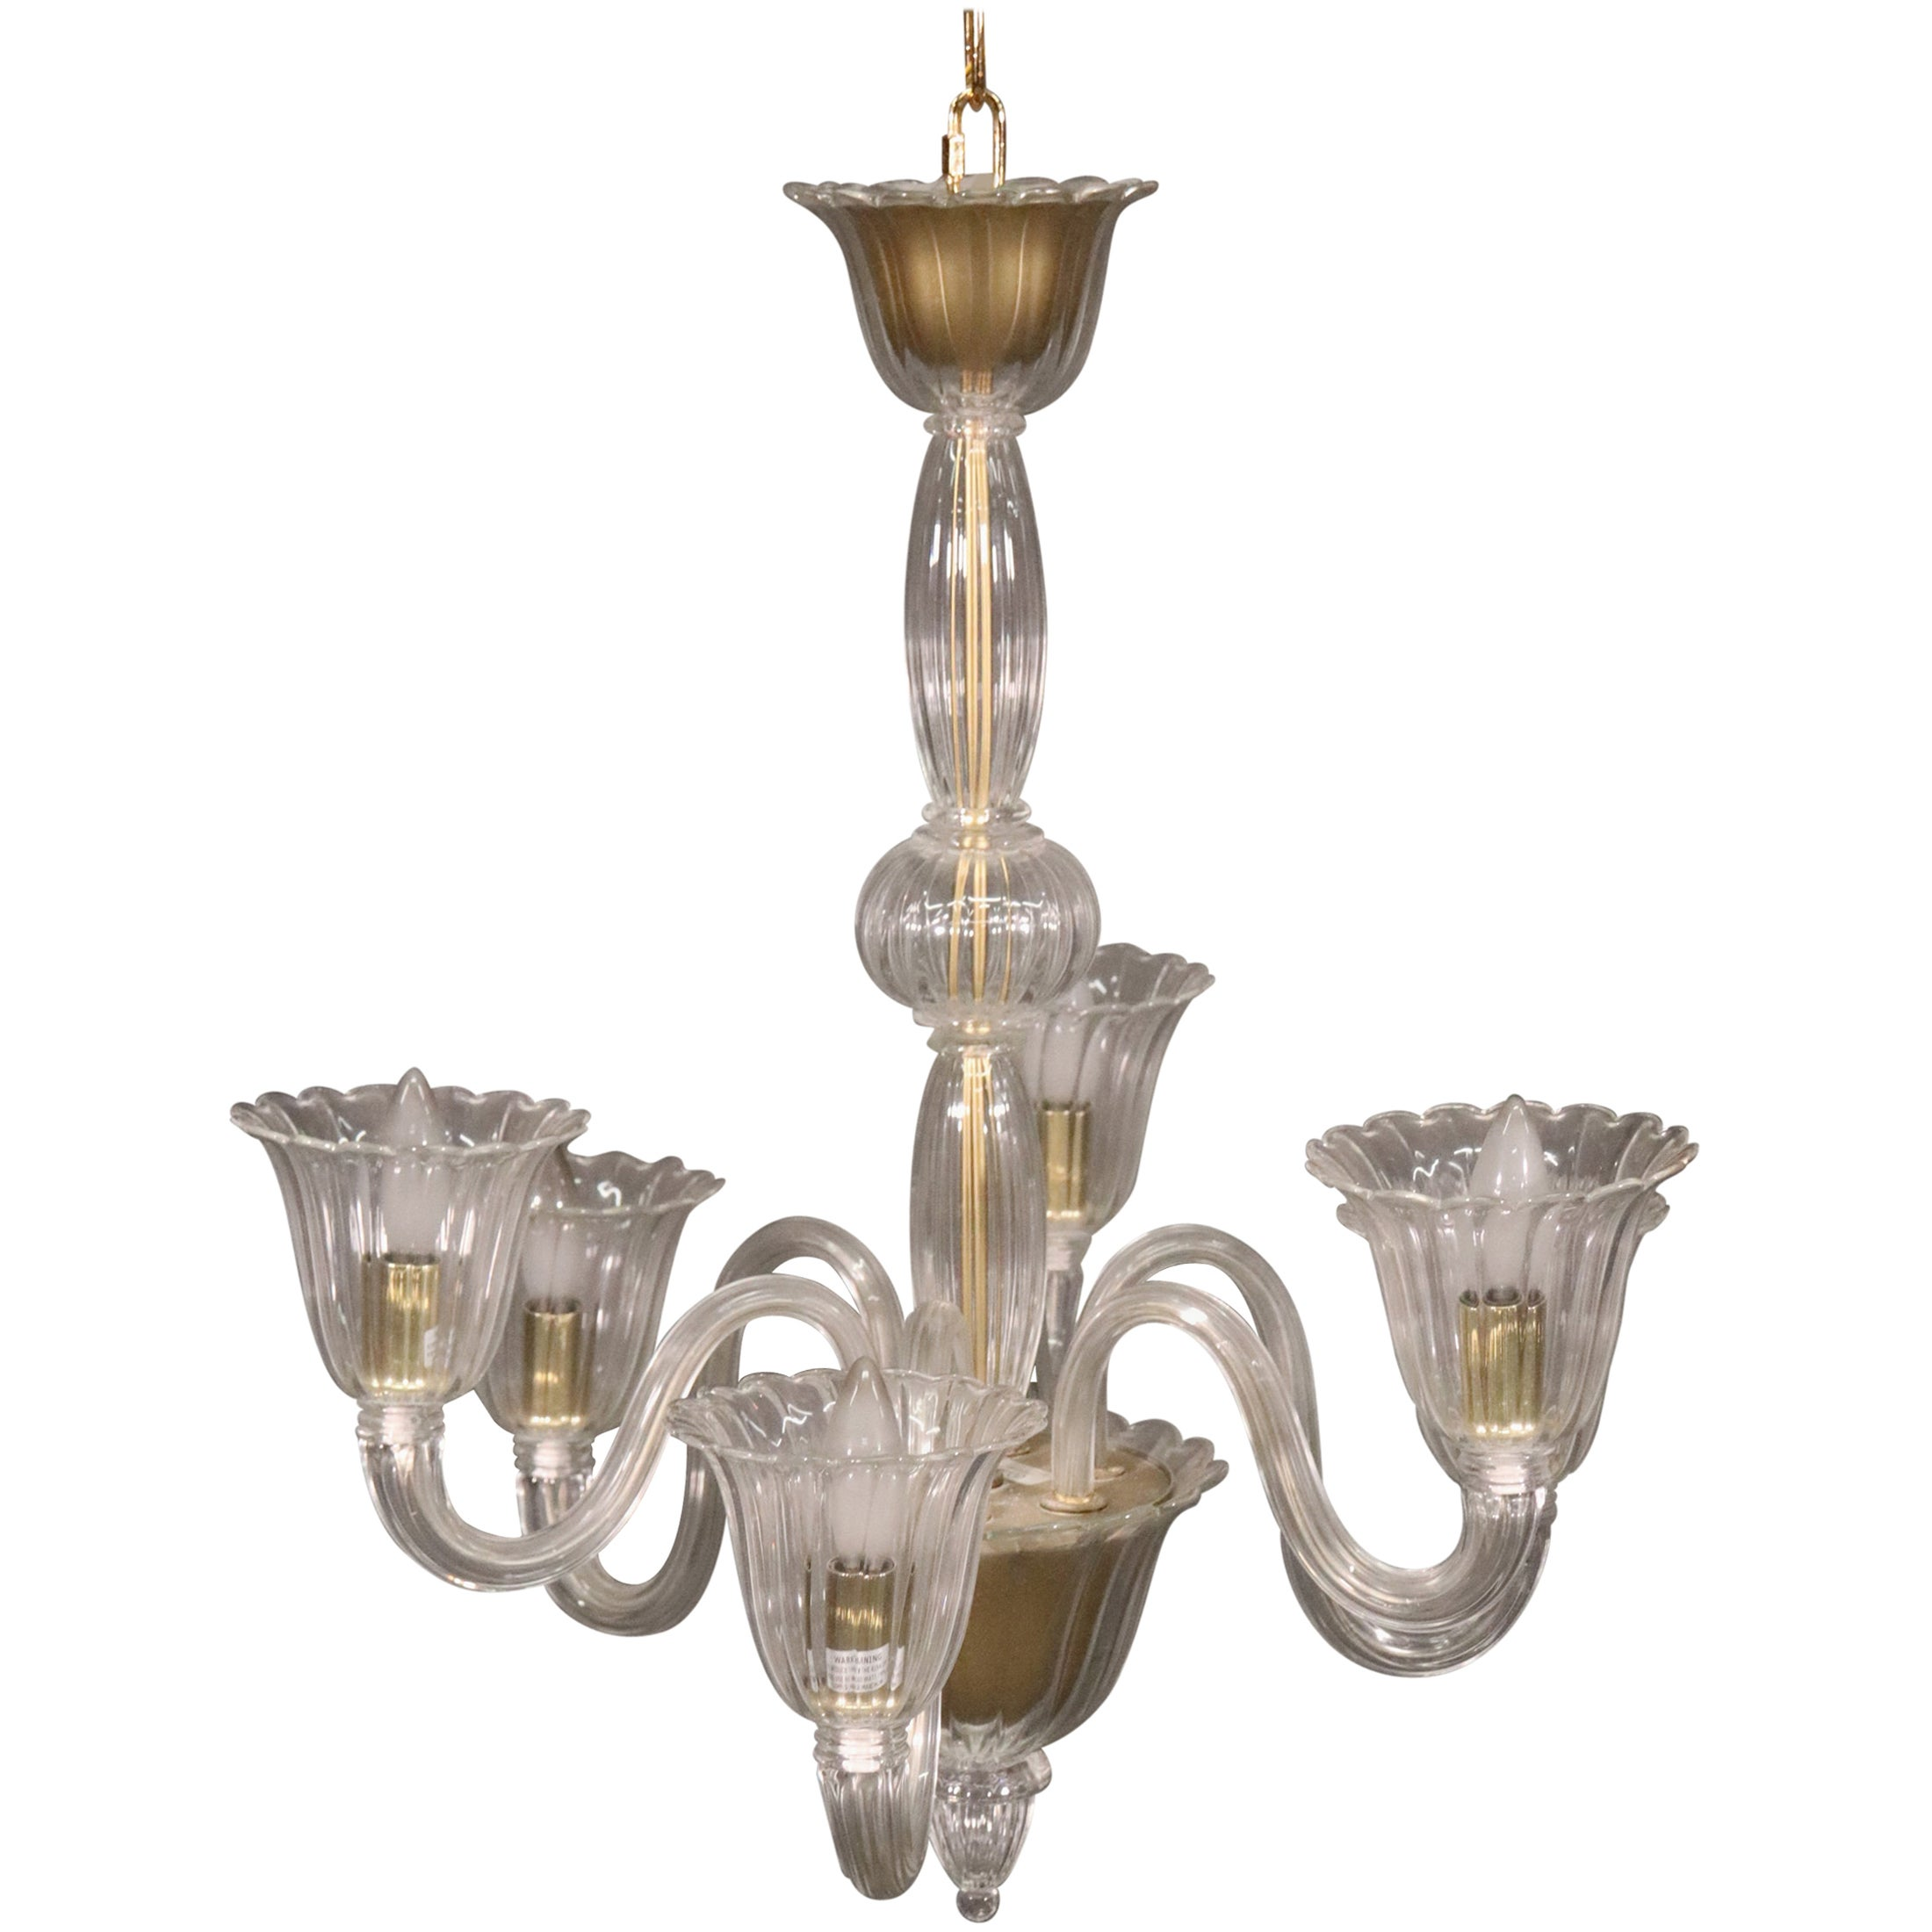 6-Arm Italian Murano Glass Chandelier